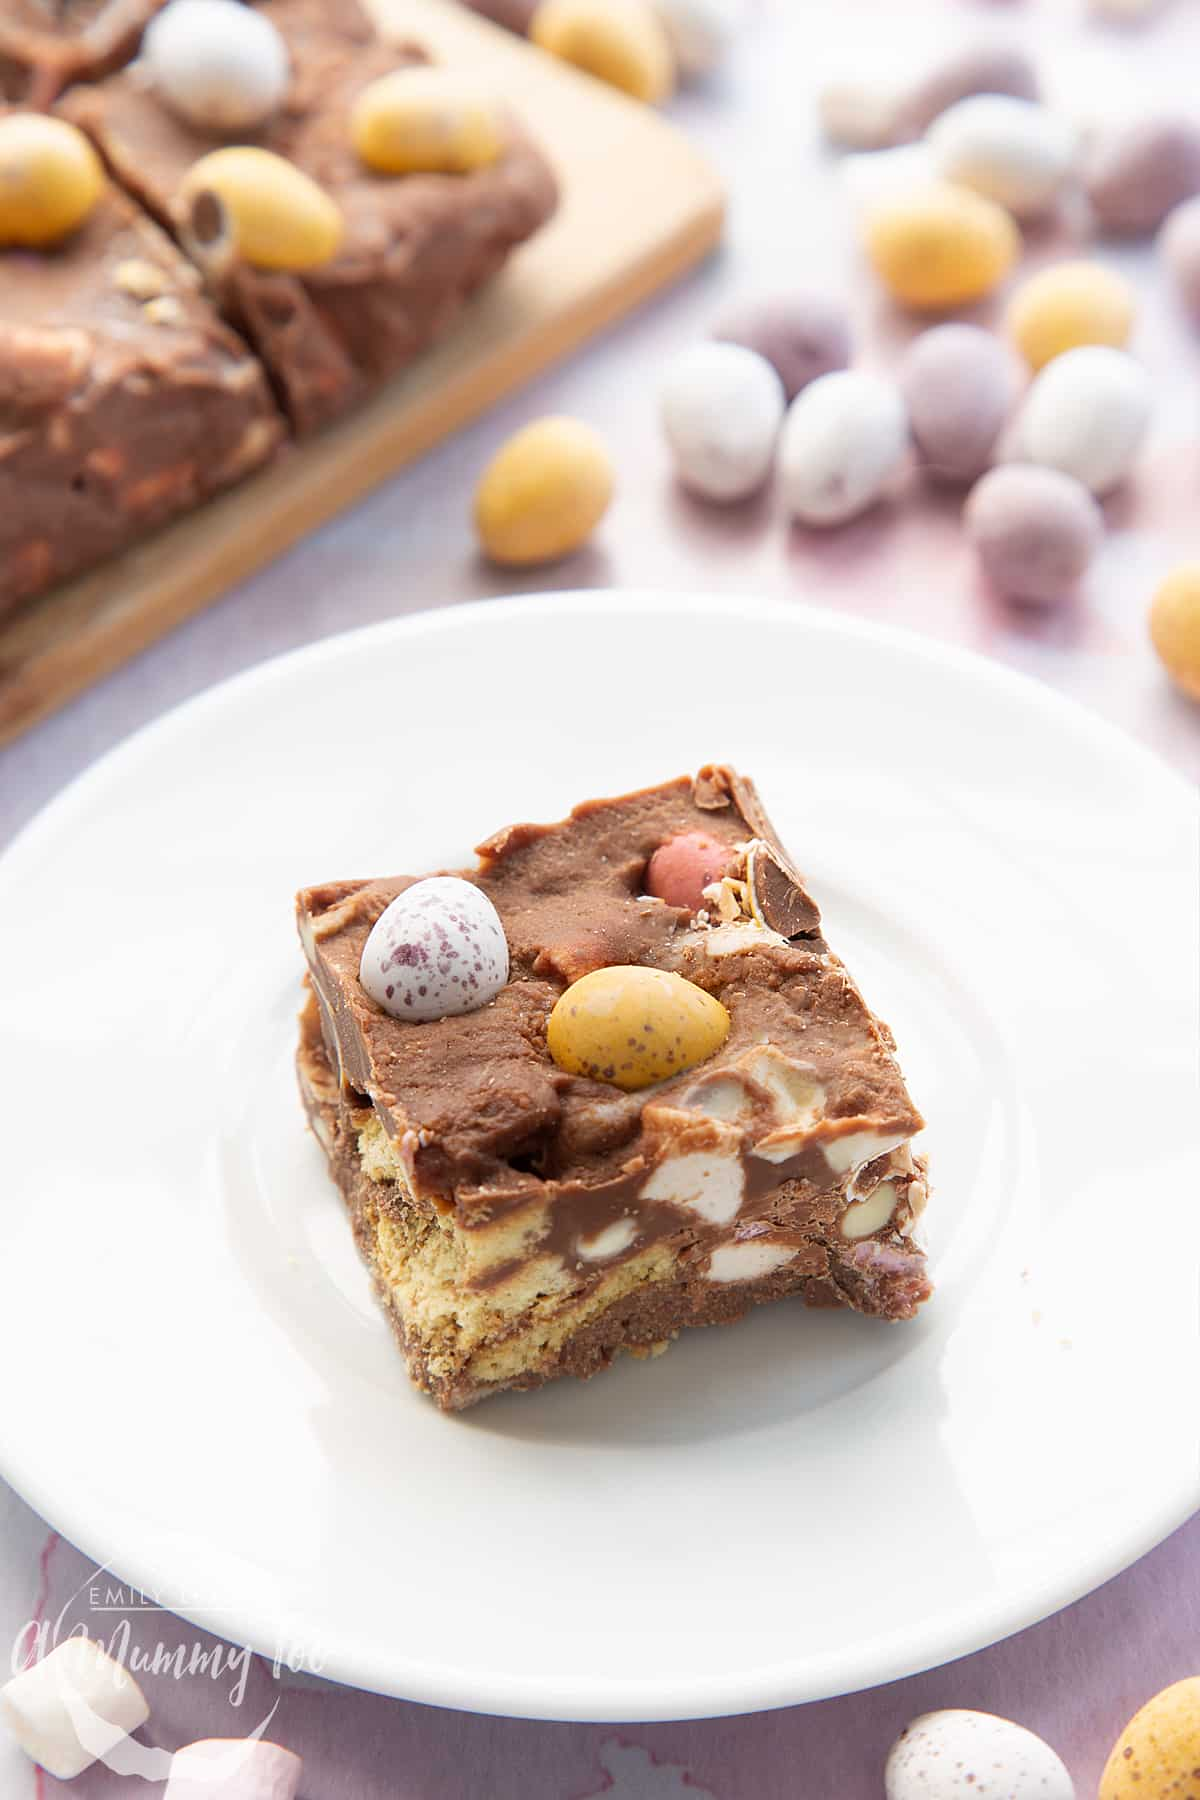 A piece of Mini Egg rocky road on a small white plate. More rocky road is in the background.